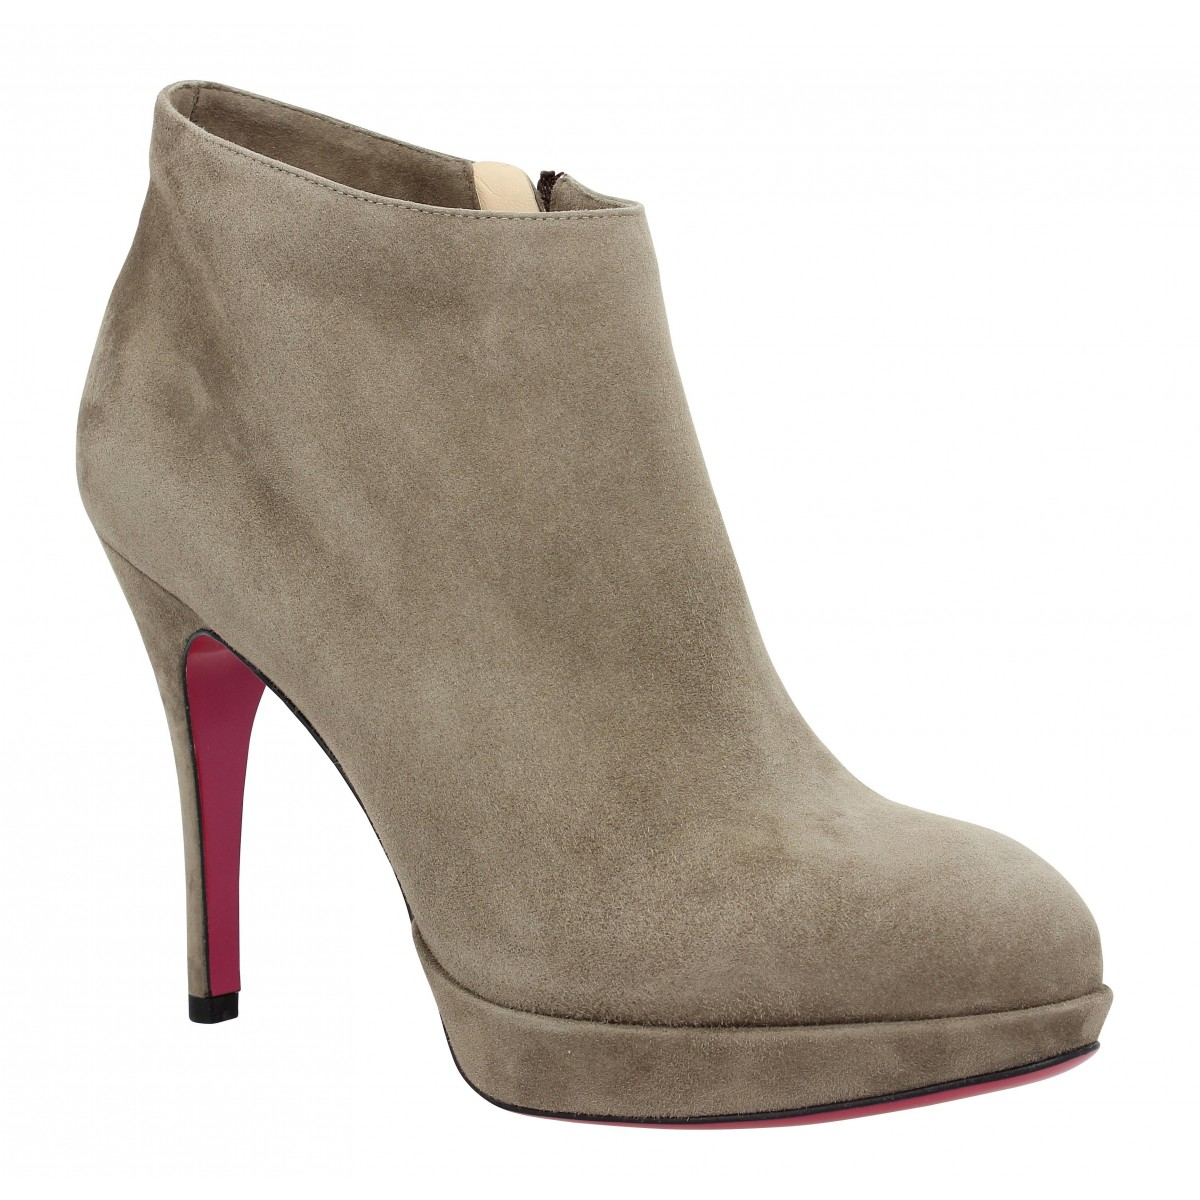 Bottines LUCIANO PADOVAN 516 velours Femme Taupe